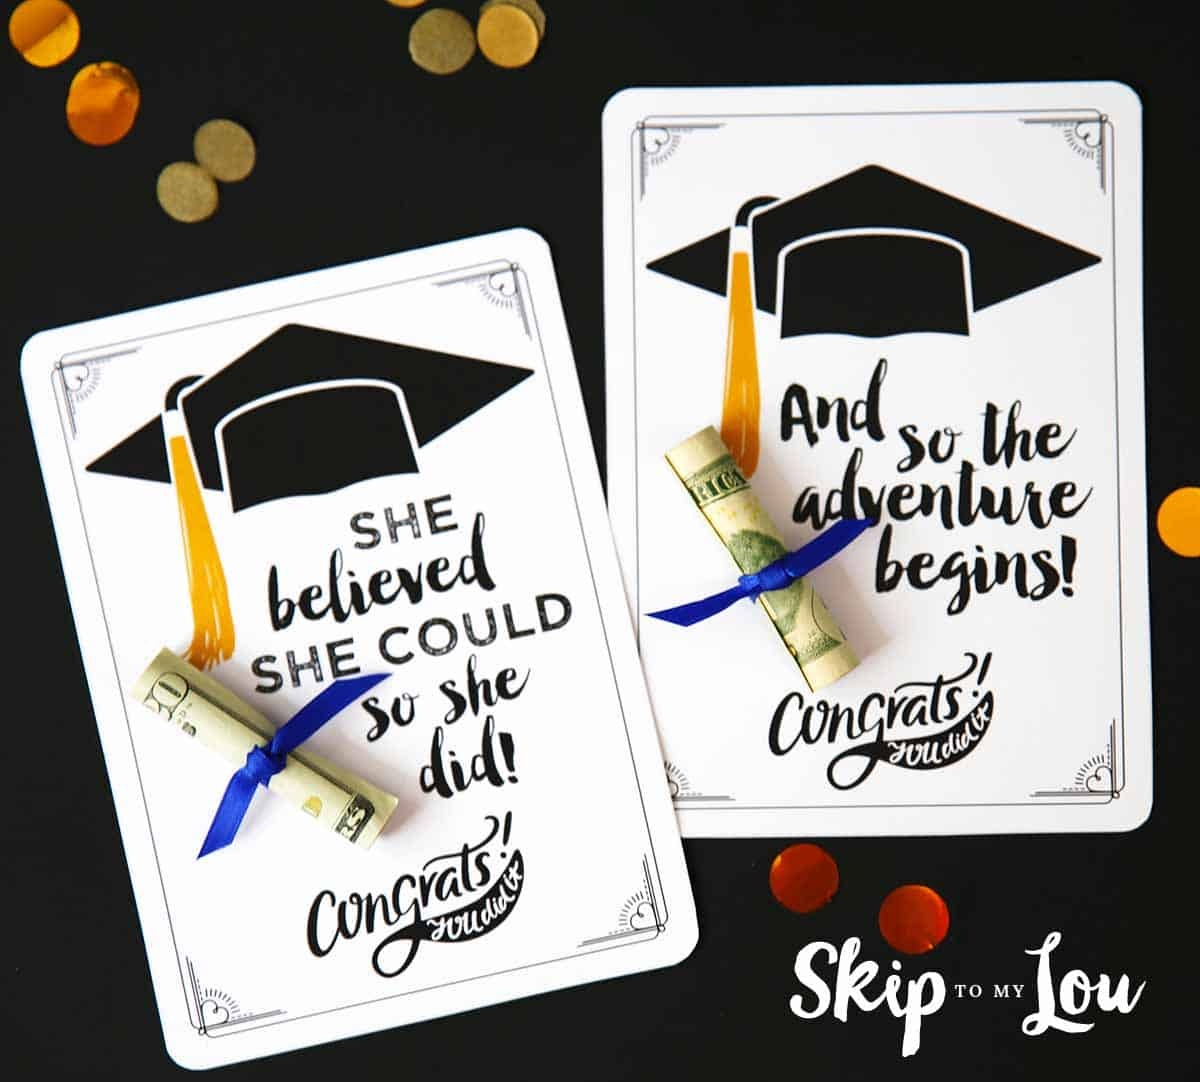 Free Graduation Cards With Positive Quotes And Cash! - Graduation Cards Free Printable Funny